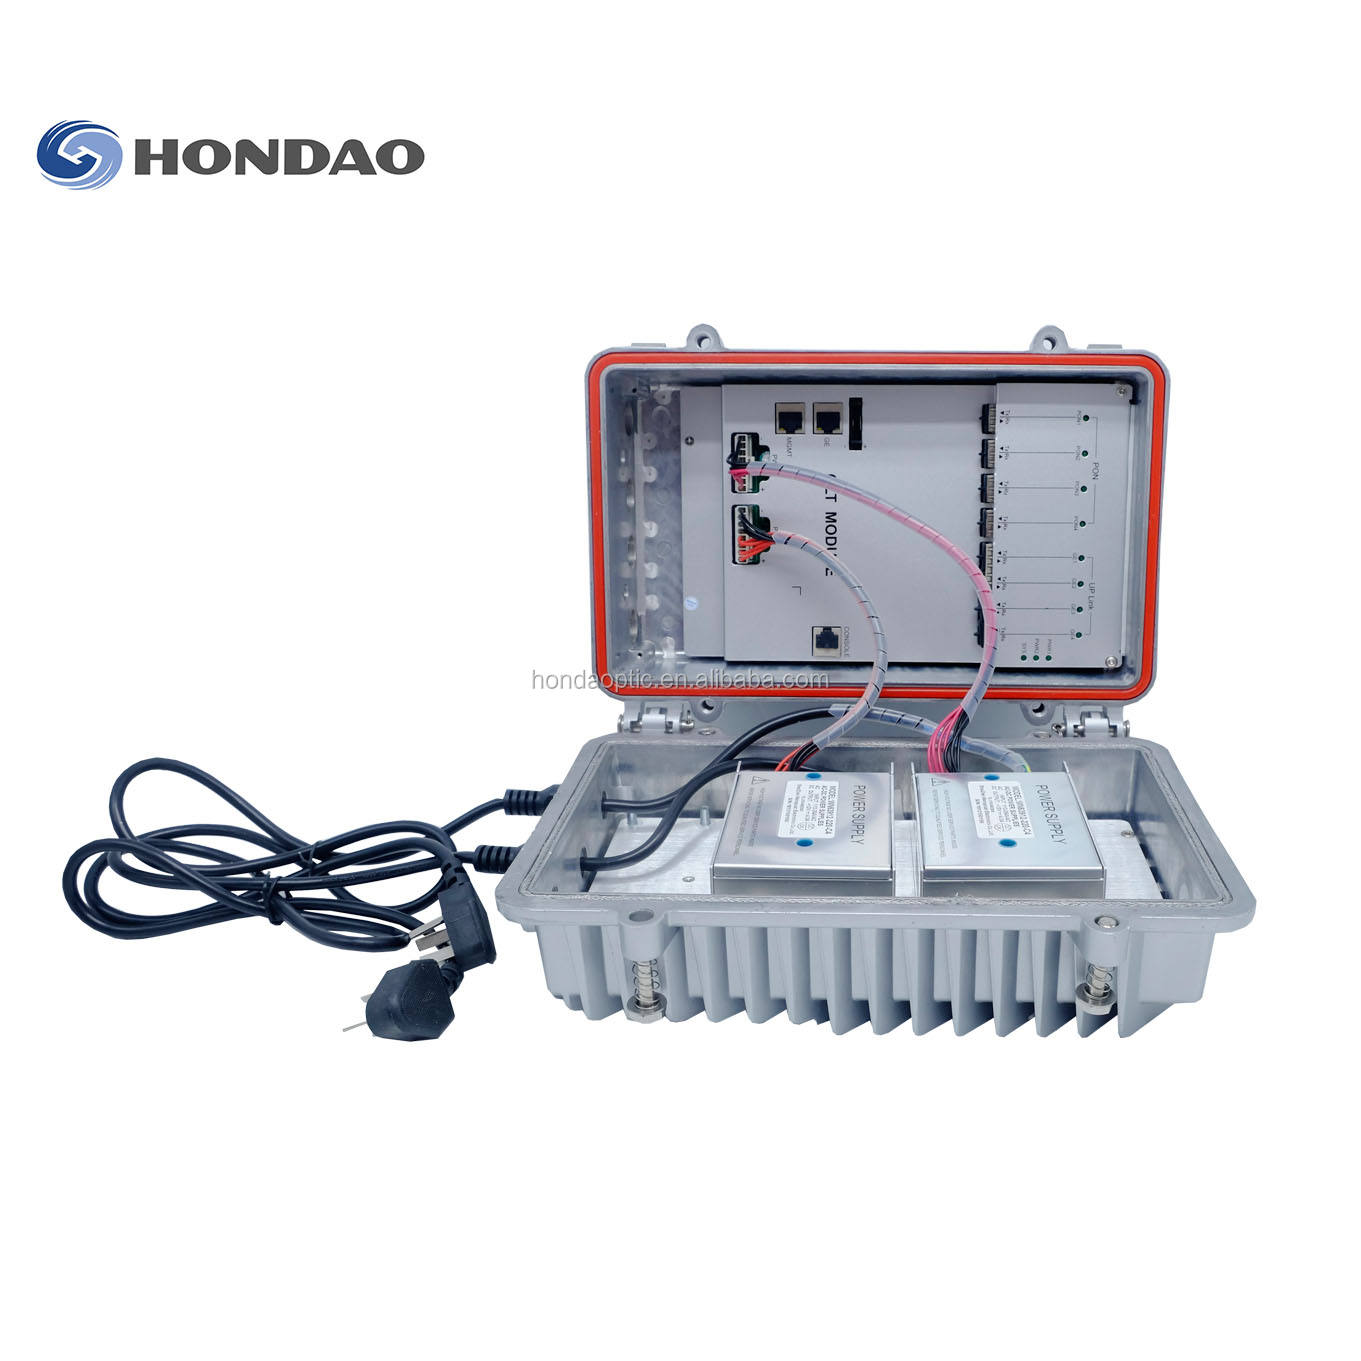 Hondao Outdoor 4PON Port sfp EPON/GEPON OLT Provide EDFA and WDM